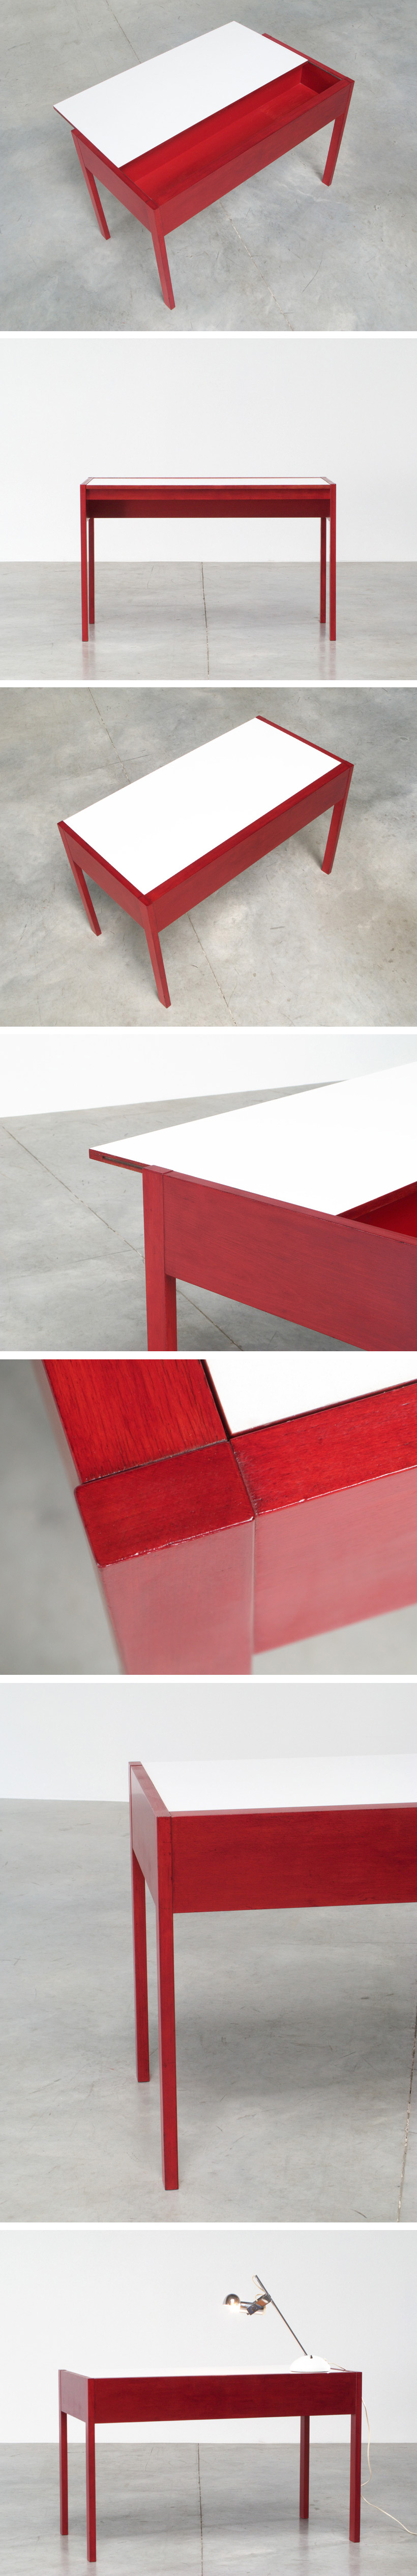 Rectangular red wooden modernist desk 1970 Large